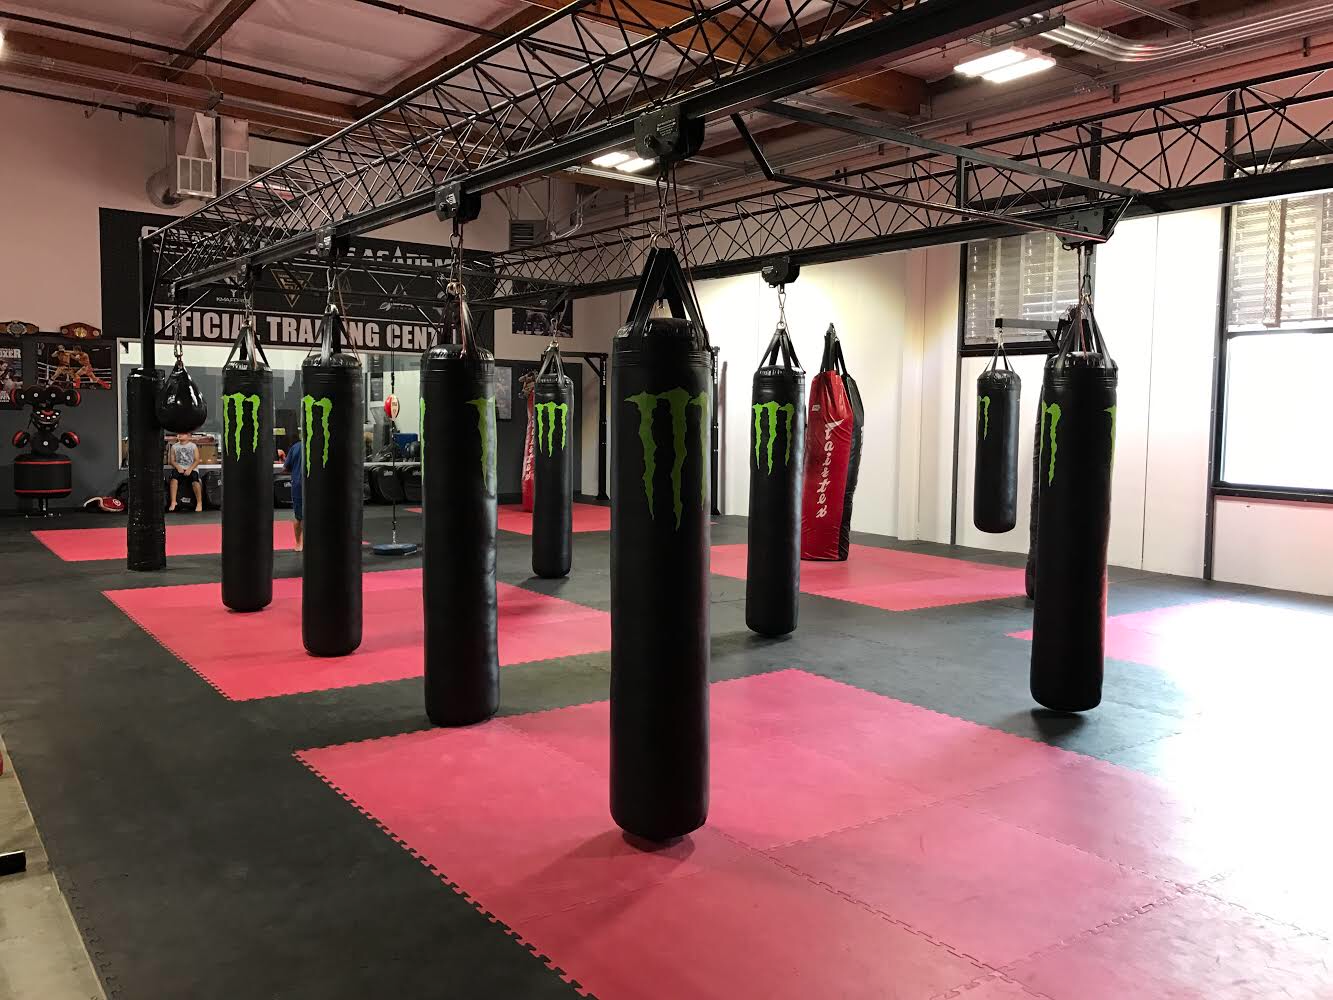 Combat Sports Academy (CSA) Legends of Striking MMA, Krav Maga, Muay Thai, Jiu Jitsu, Wrestling, CrossFit, Kids Programs, World Champion Fighters - Northern California